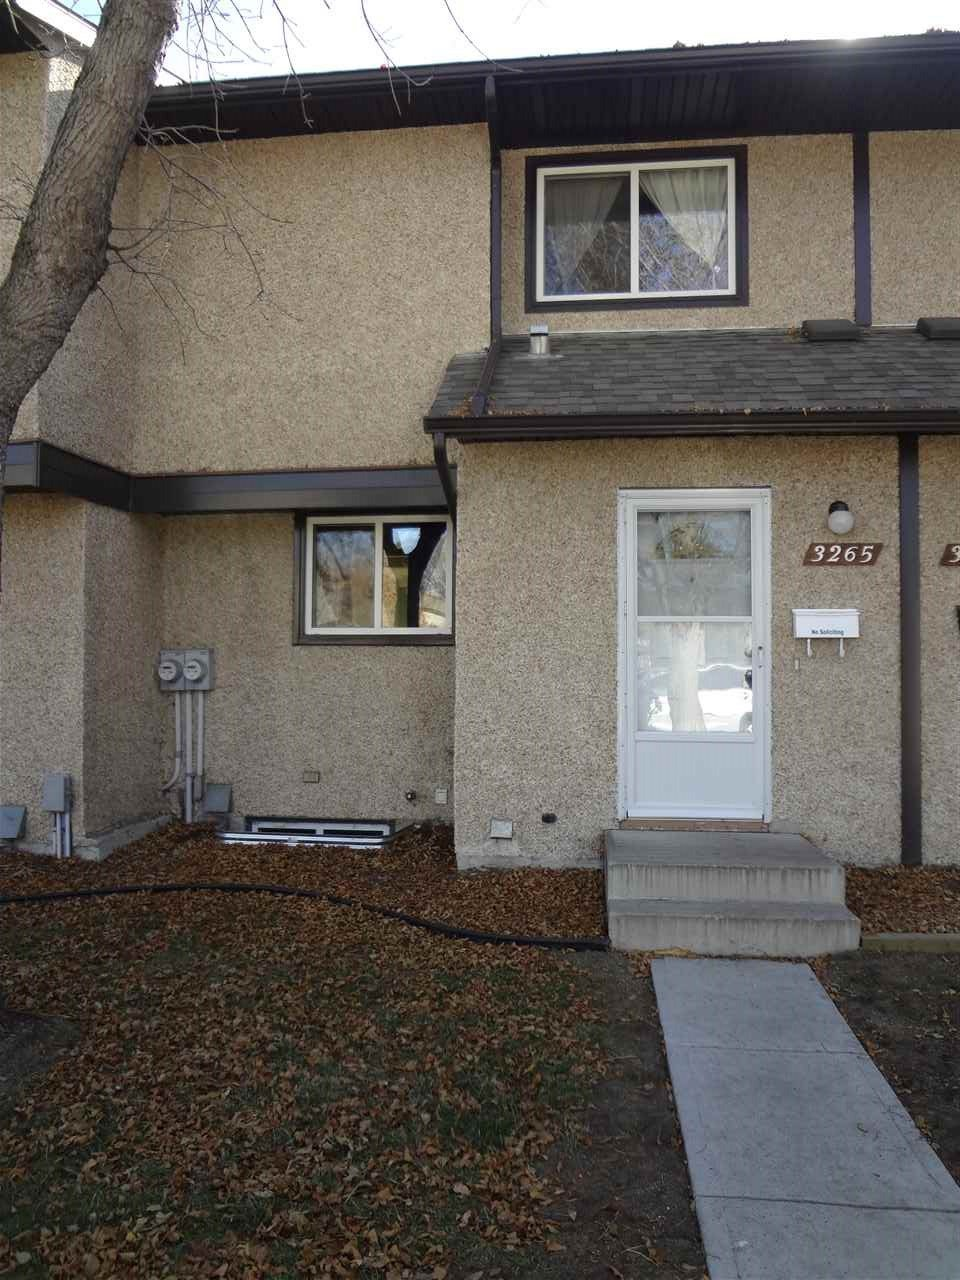 Removed: 3265 142 Avenue, Edmonton, AB - Removed on 2019-03-29 12:54:27